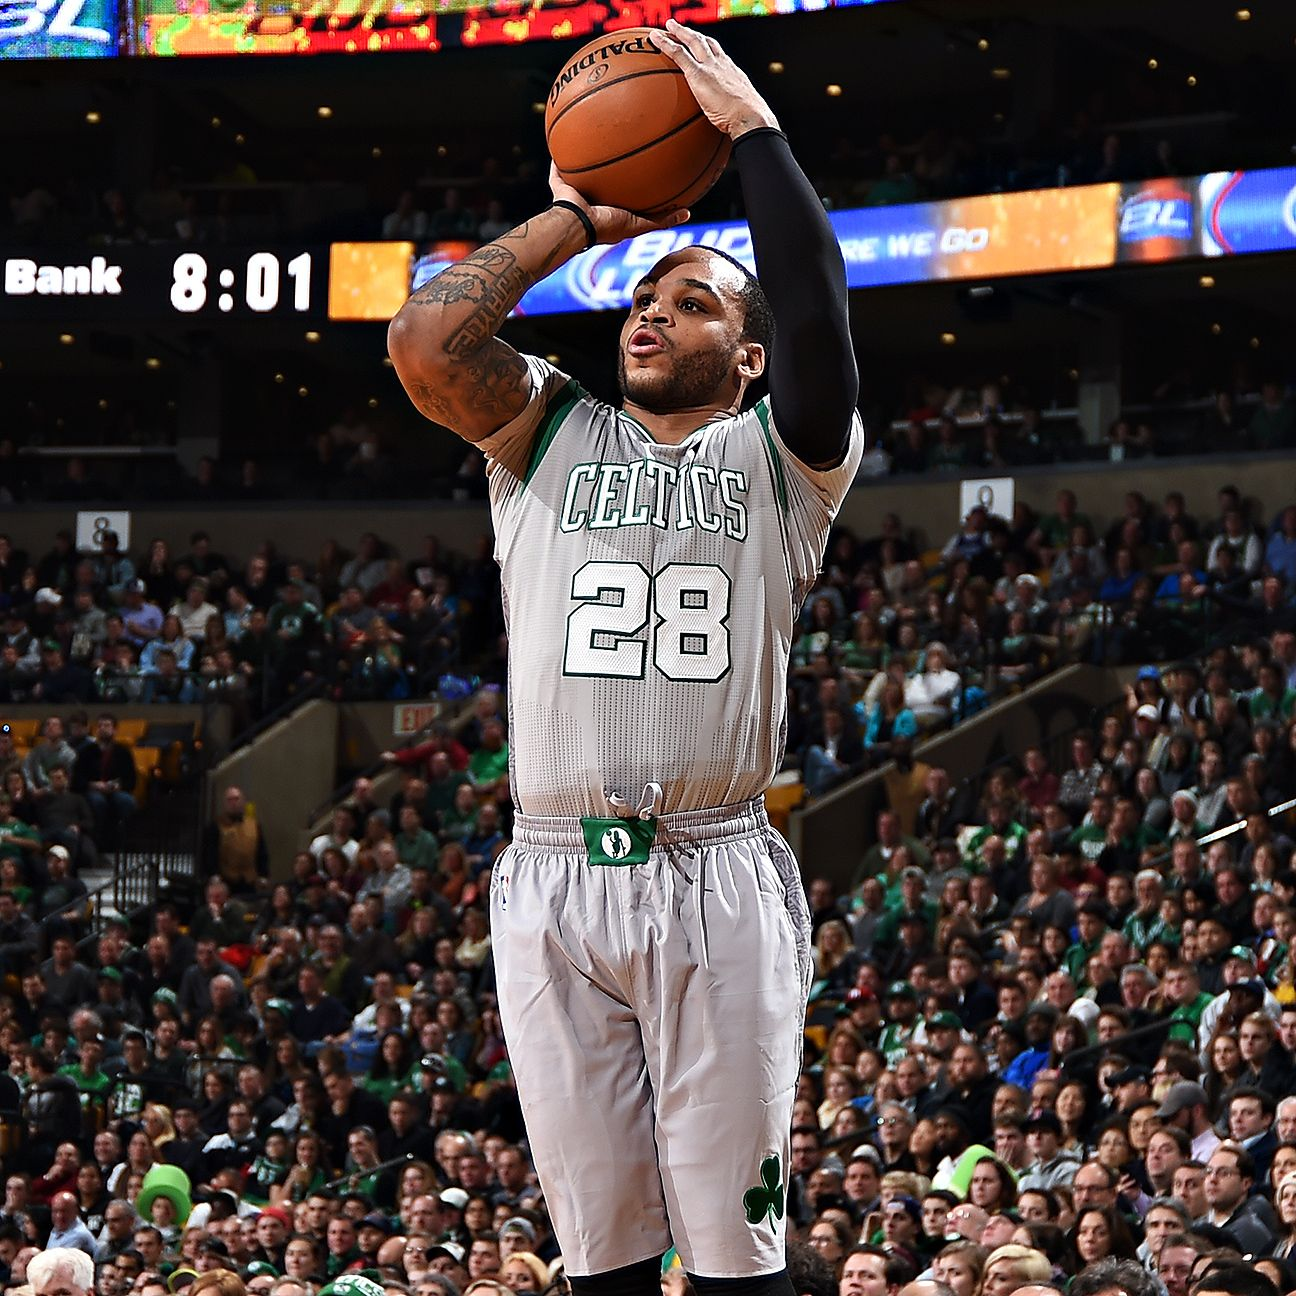 Boston Celtics Trade Jameer Nelson For Nate Robinson Of